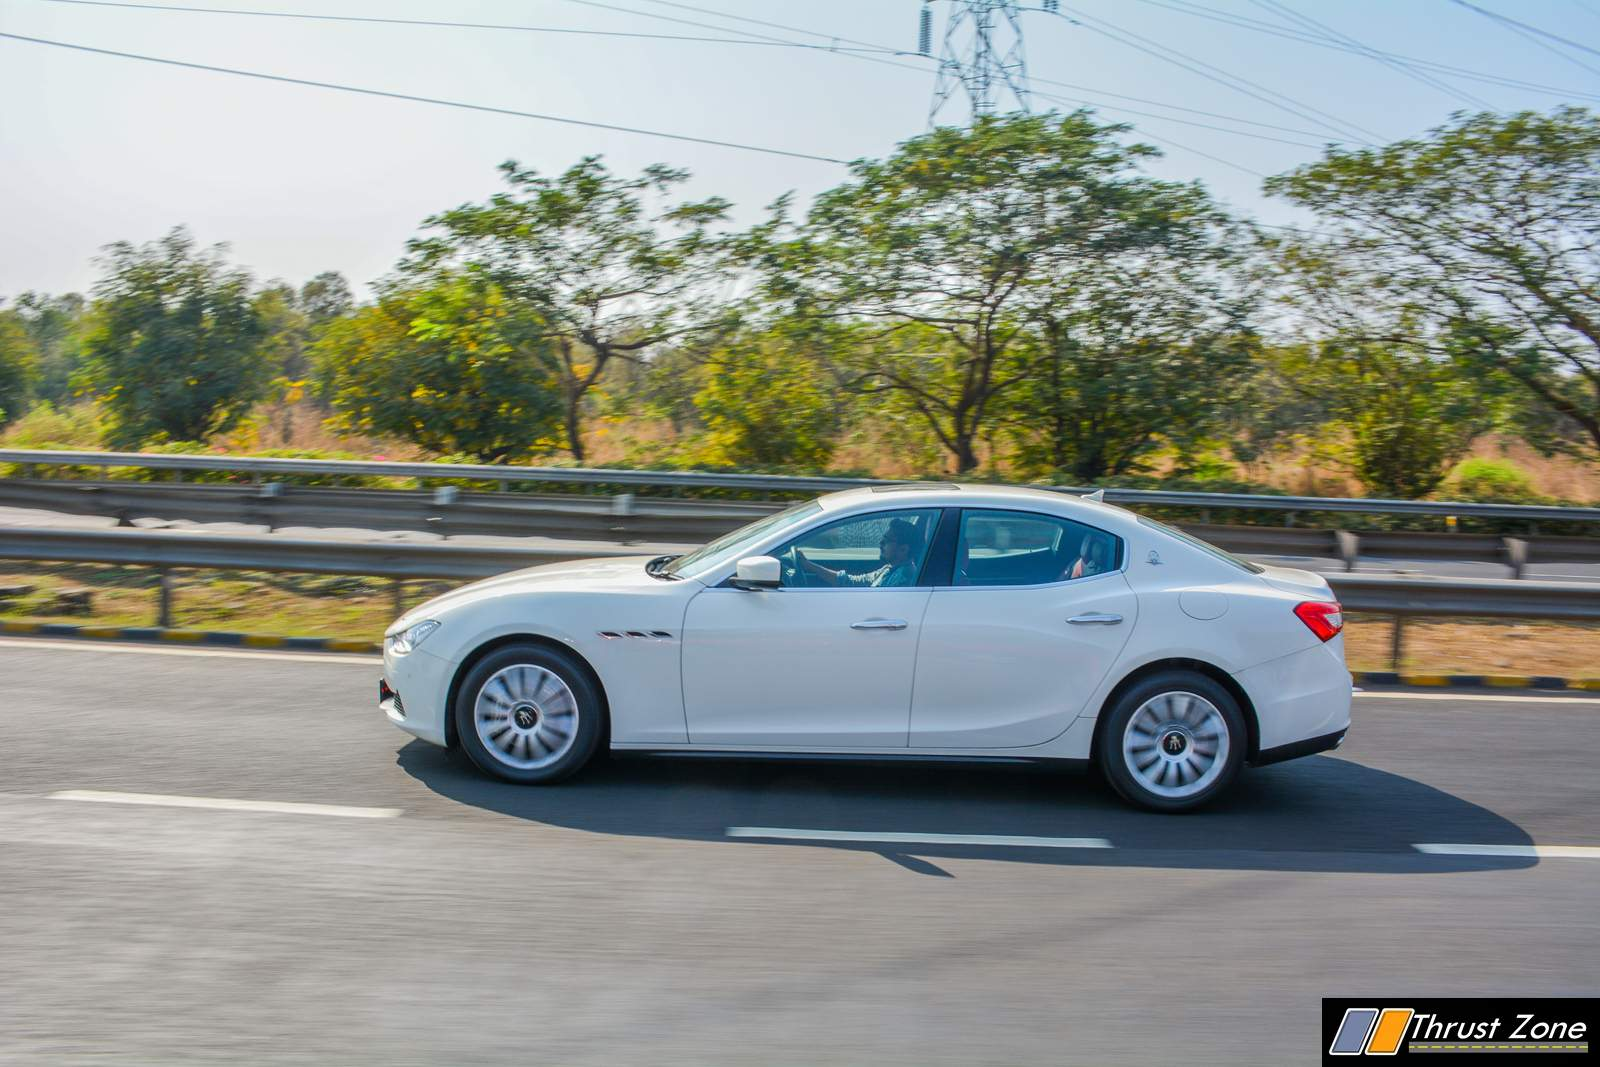 https://www.thrustzone.com/wp-content/uploads/2018/02/Maserati-Ghibli-India-diesel-review-7.jpg